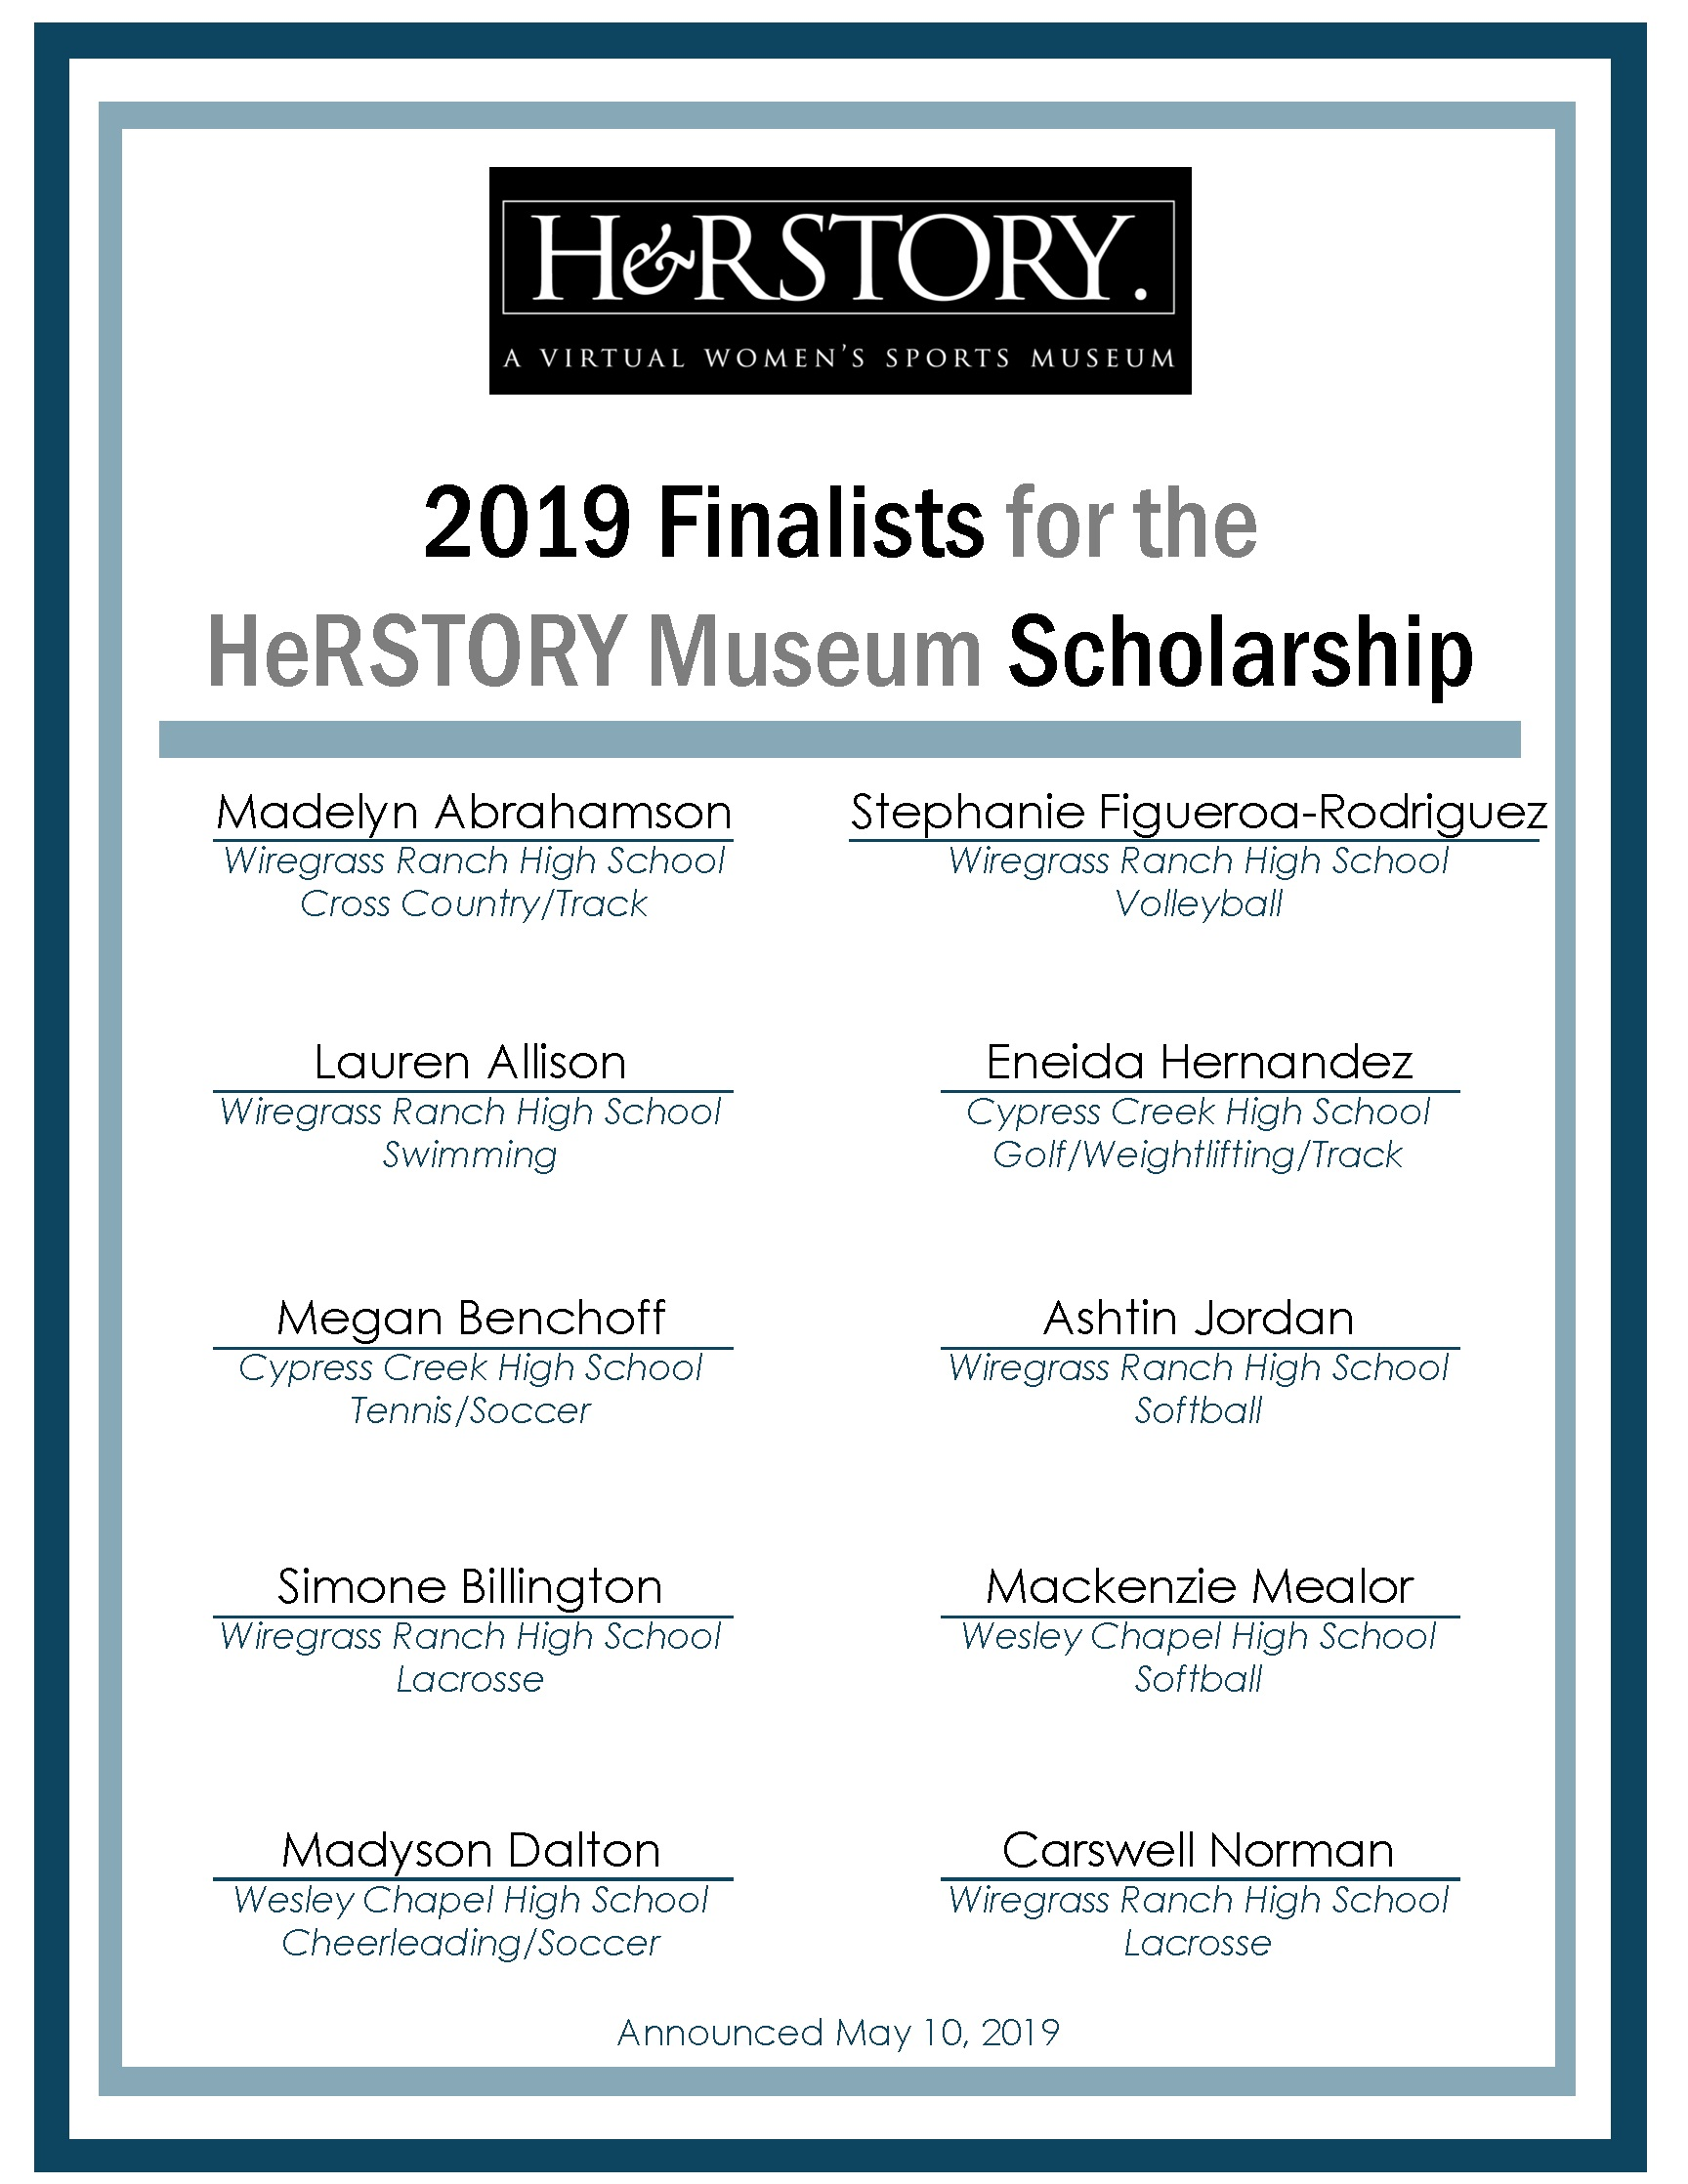 Finalists for the 2019 Scholarship, announced on May 10, 2019